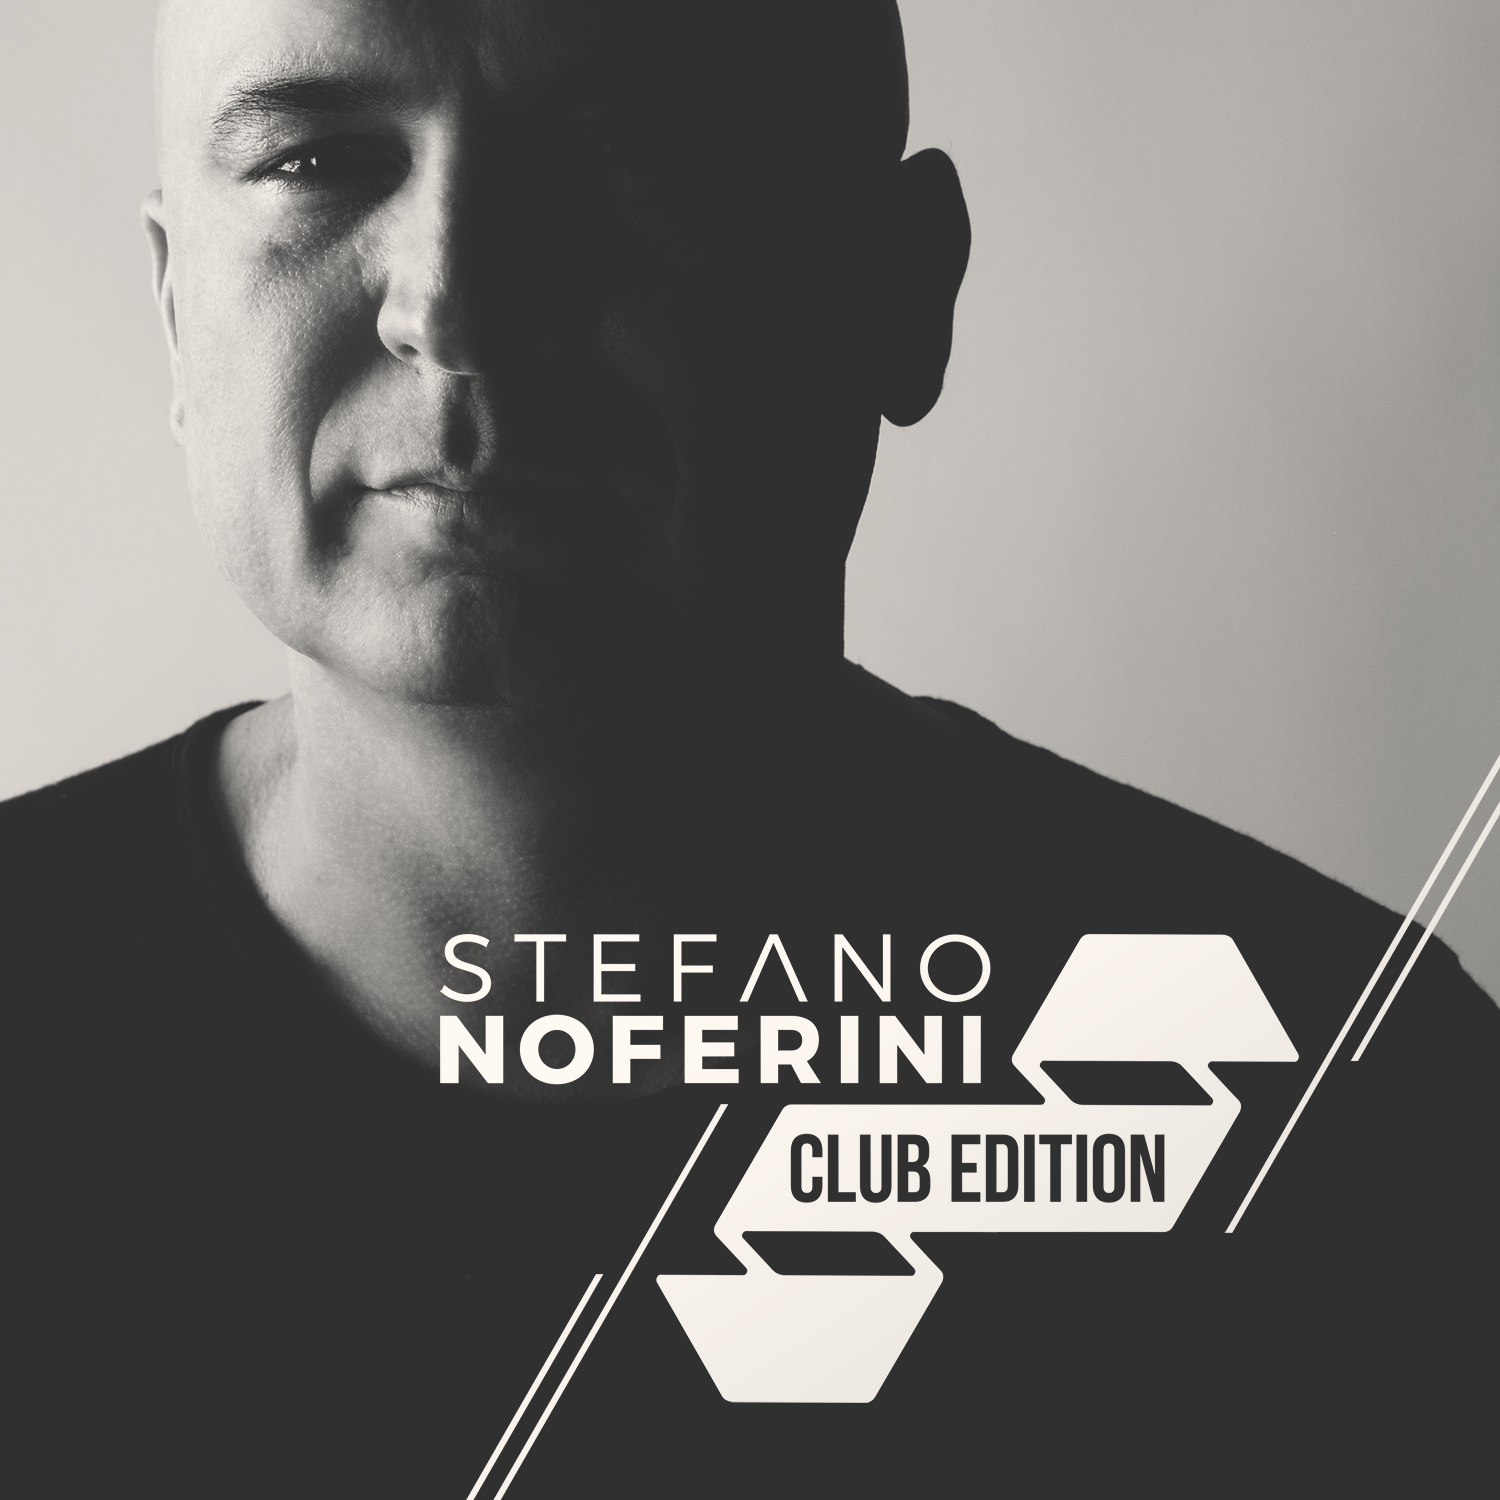 Delta Podcasts - Club Edition by Stefano Noferini (09.11.2017)